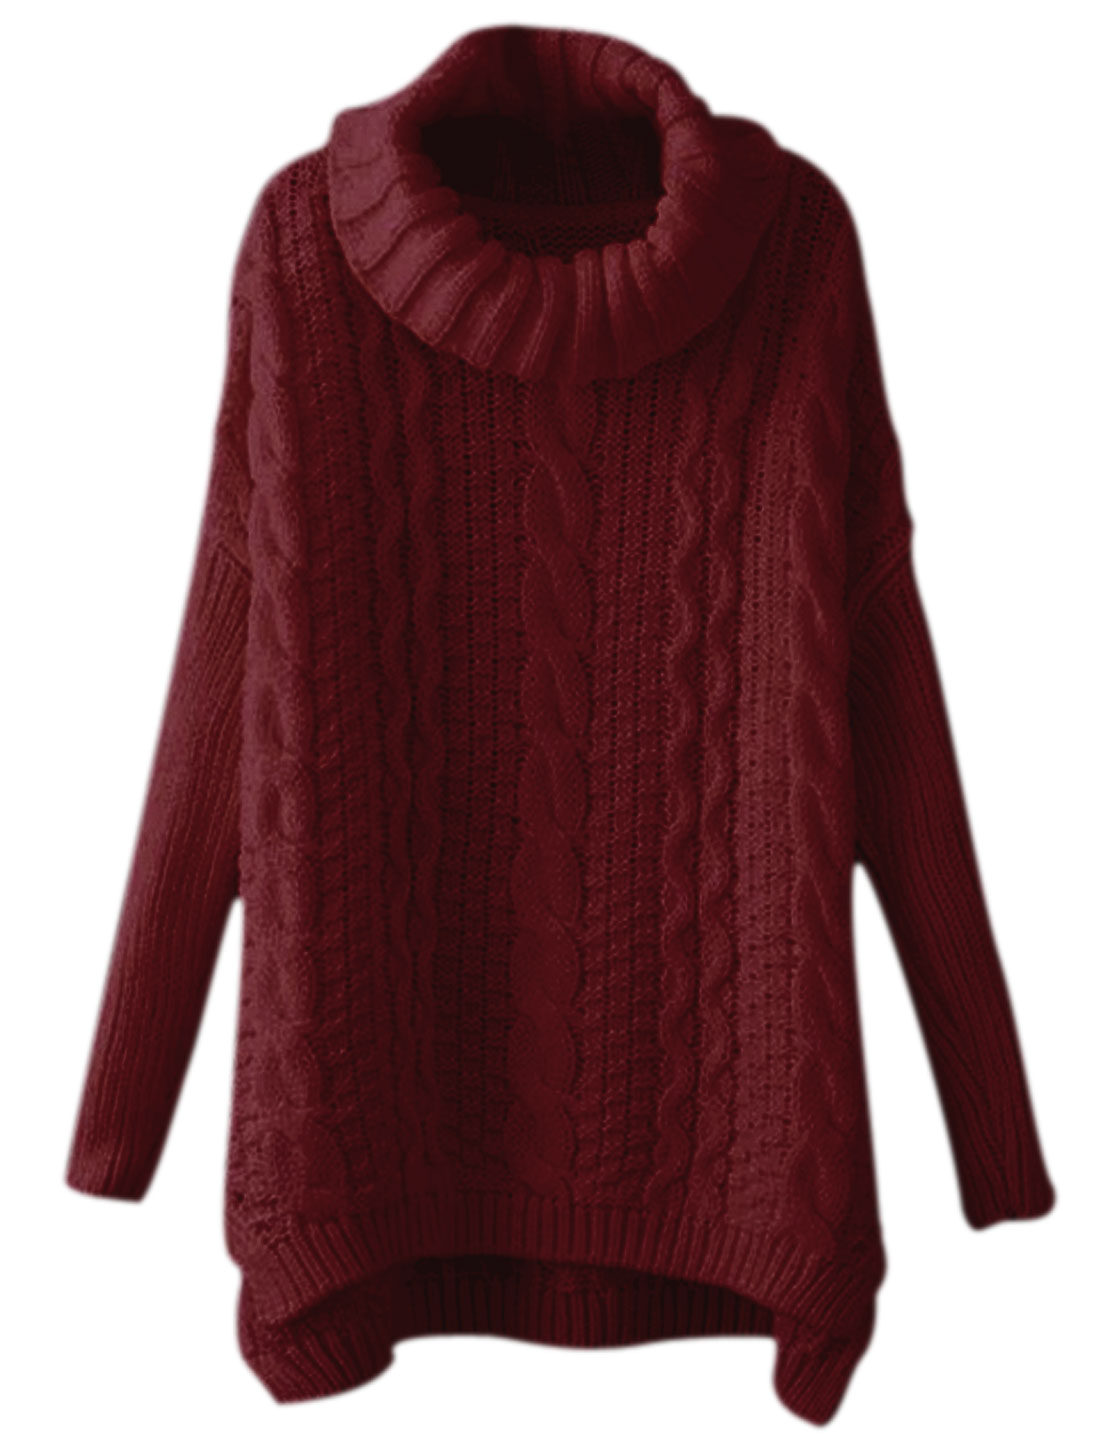 Women Turtle Neck Braided Design Batwing Tunic Sweater Burgundy M